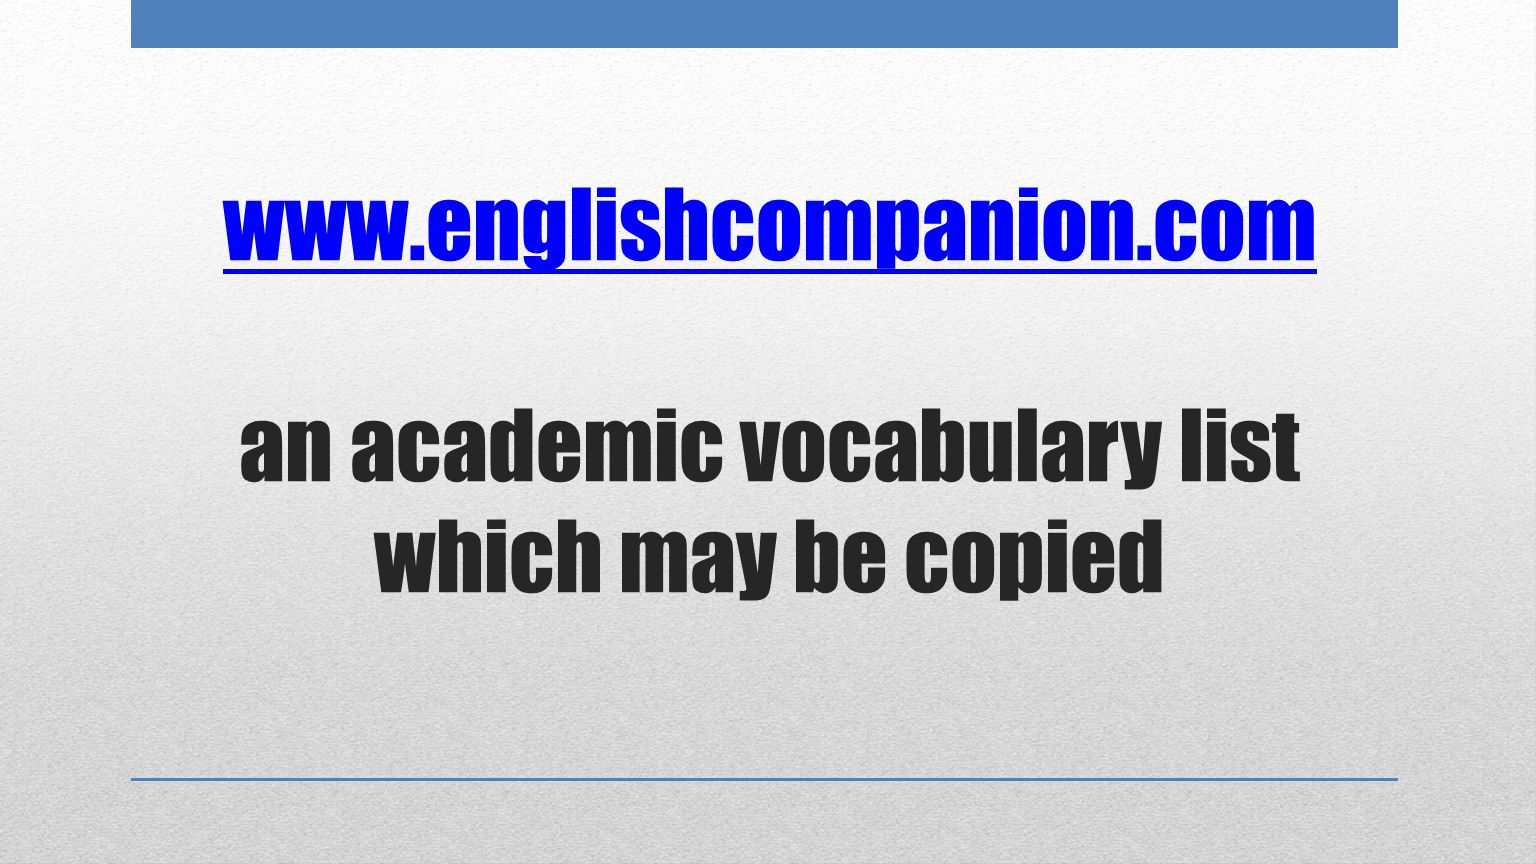 www.englishcompanion.com www.englishcompanion.com an academic vocabulary list which may be copied